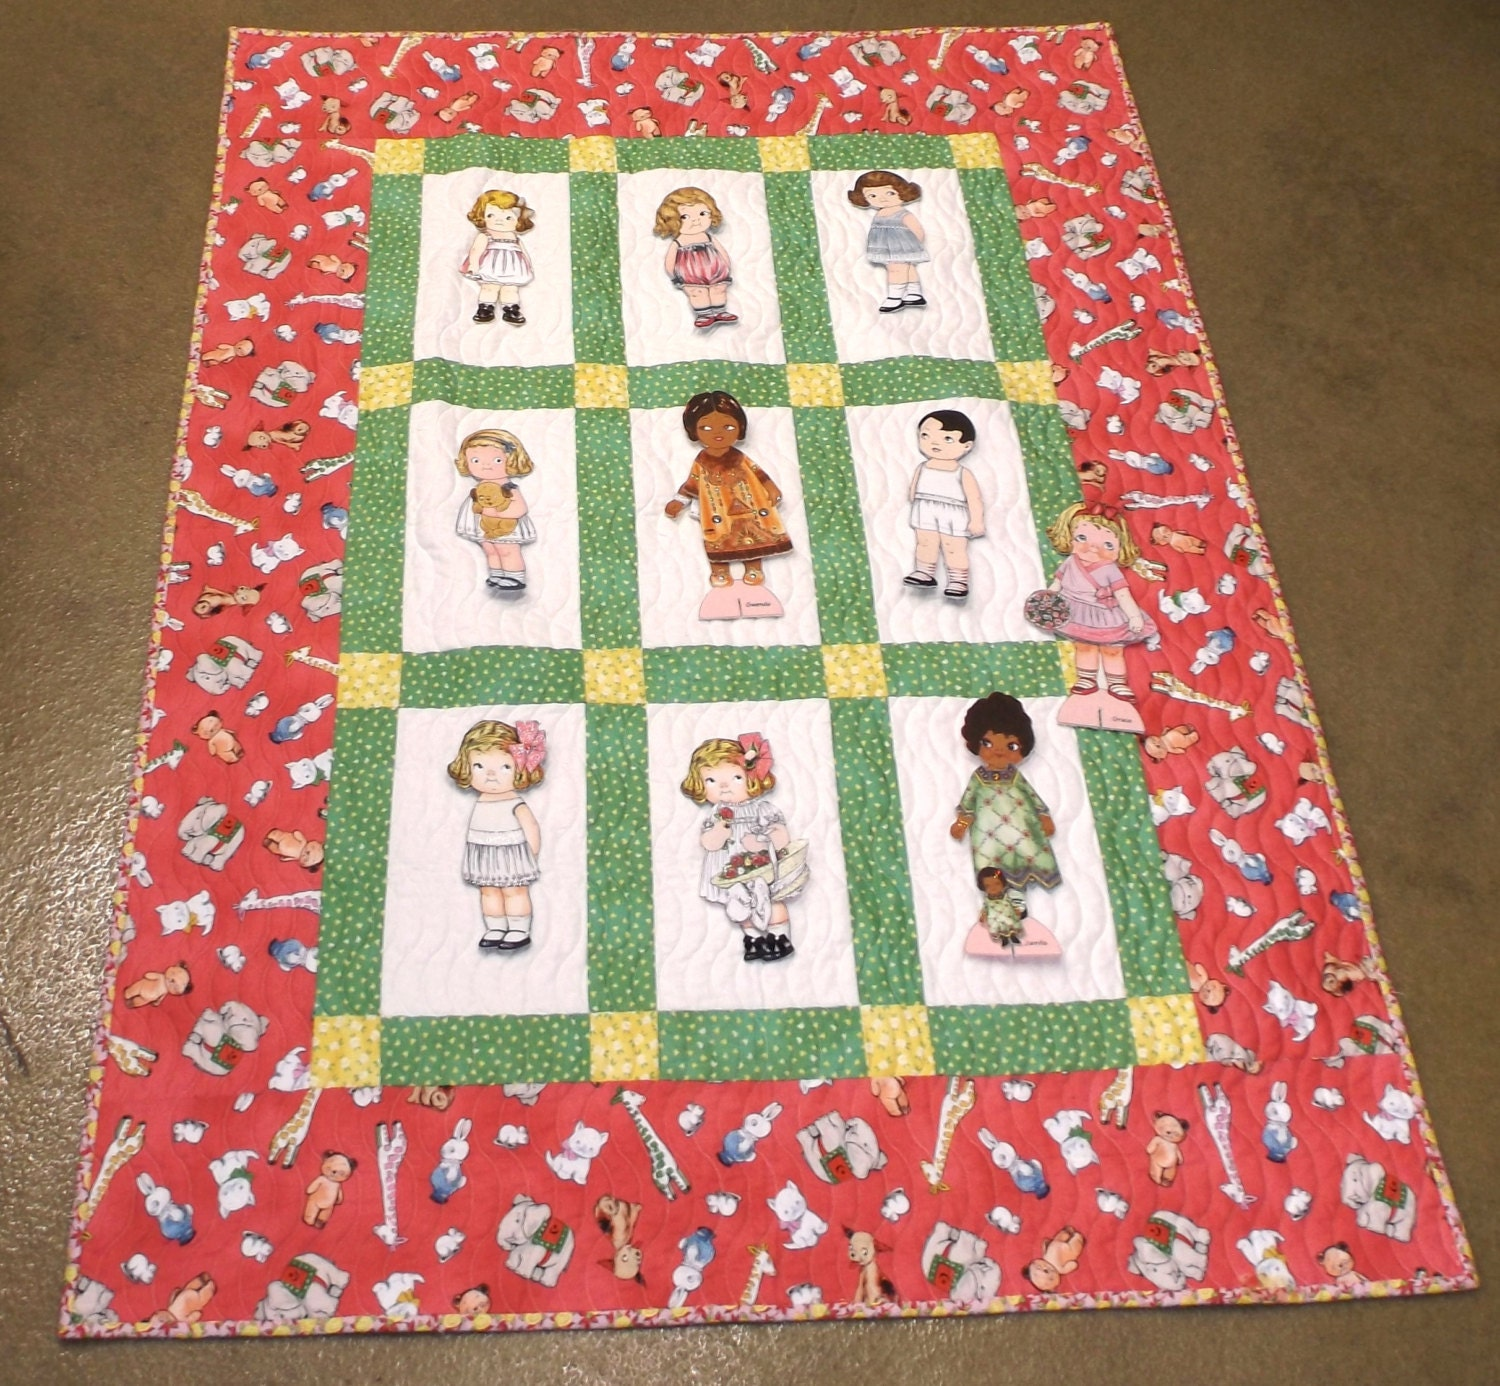 Paper Doll Quilt Pattern Kit: Fons And Porter Paper Doll Quilt KIT Aunt Lindy By Siblingarts